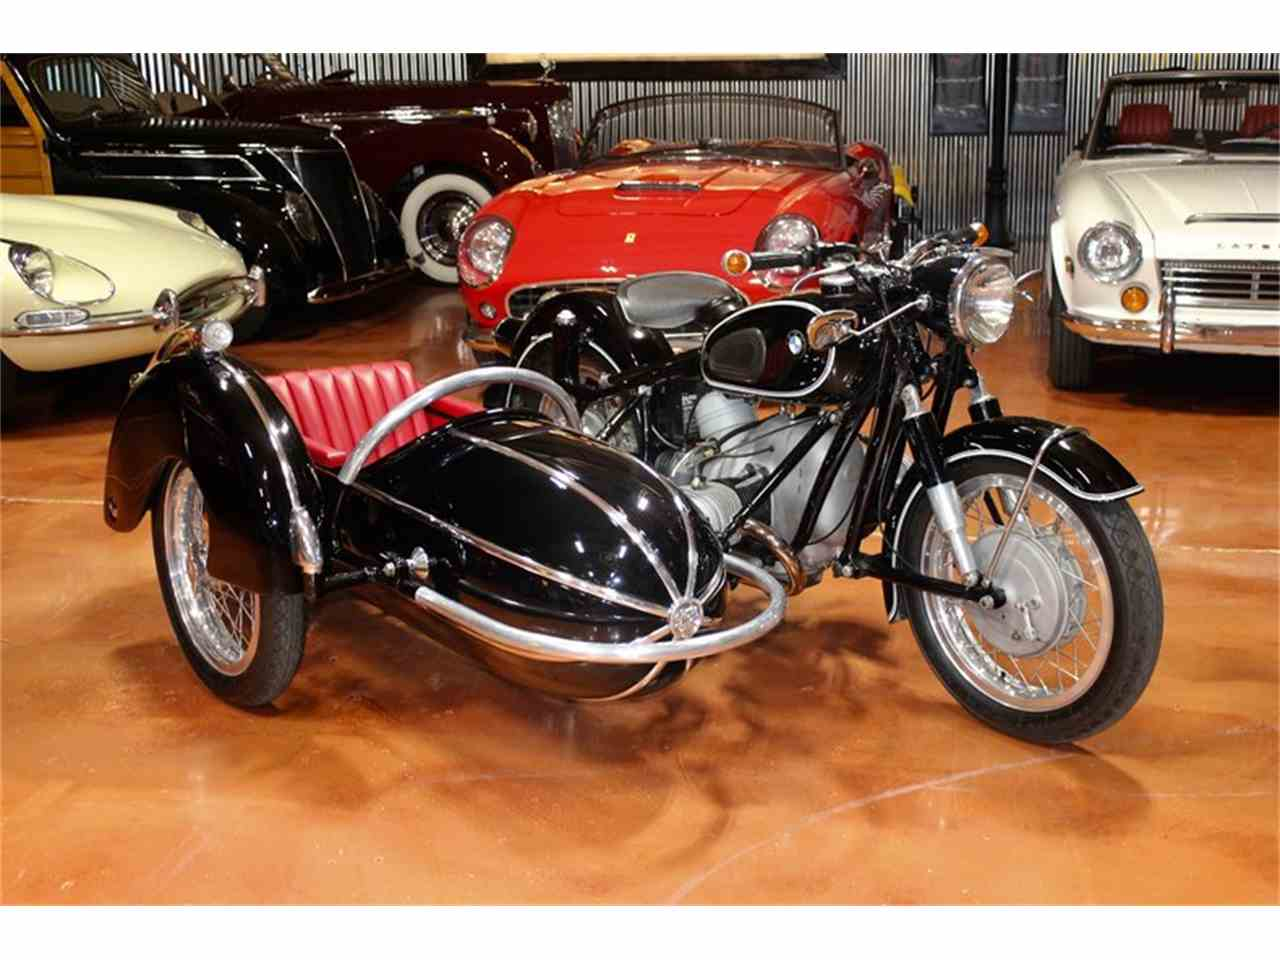 Large Picture of '65 BMW R60 located in Arizona Auction Vehicle Offered by EMG - JP7V